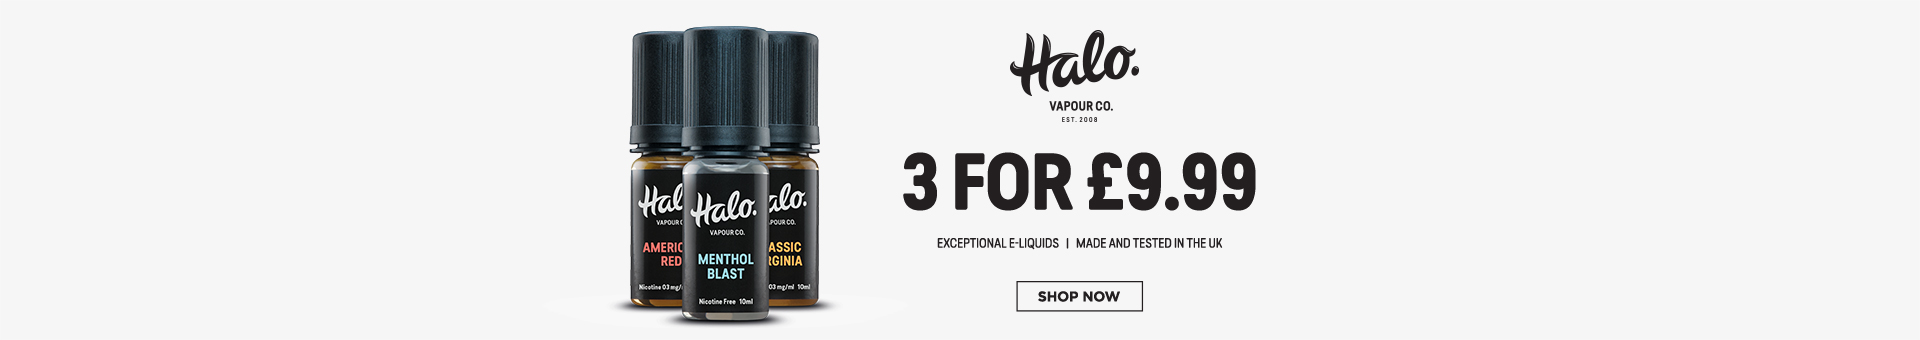 Halo UK made e-liquid 3 for £9.99